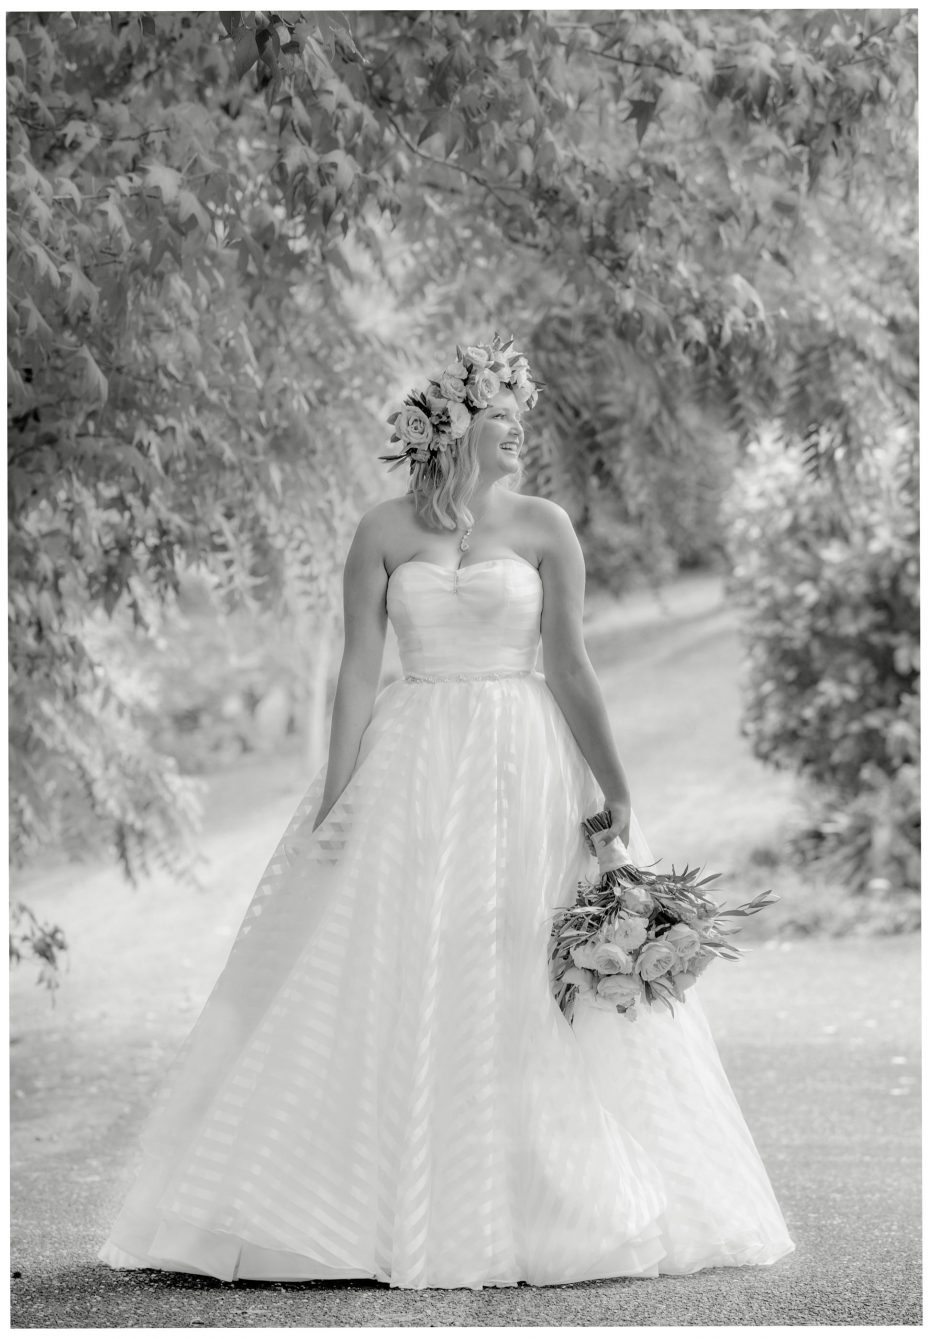 Black and white portrait of bride in full length white wedding dress from Astra Bridal. Flower crown and bouquet in hand.